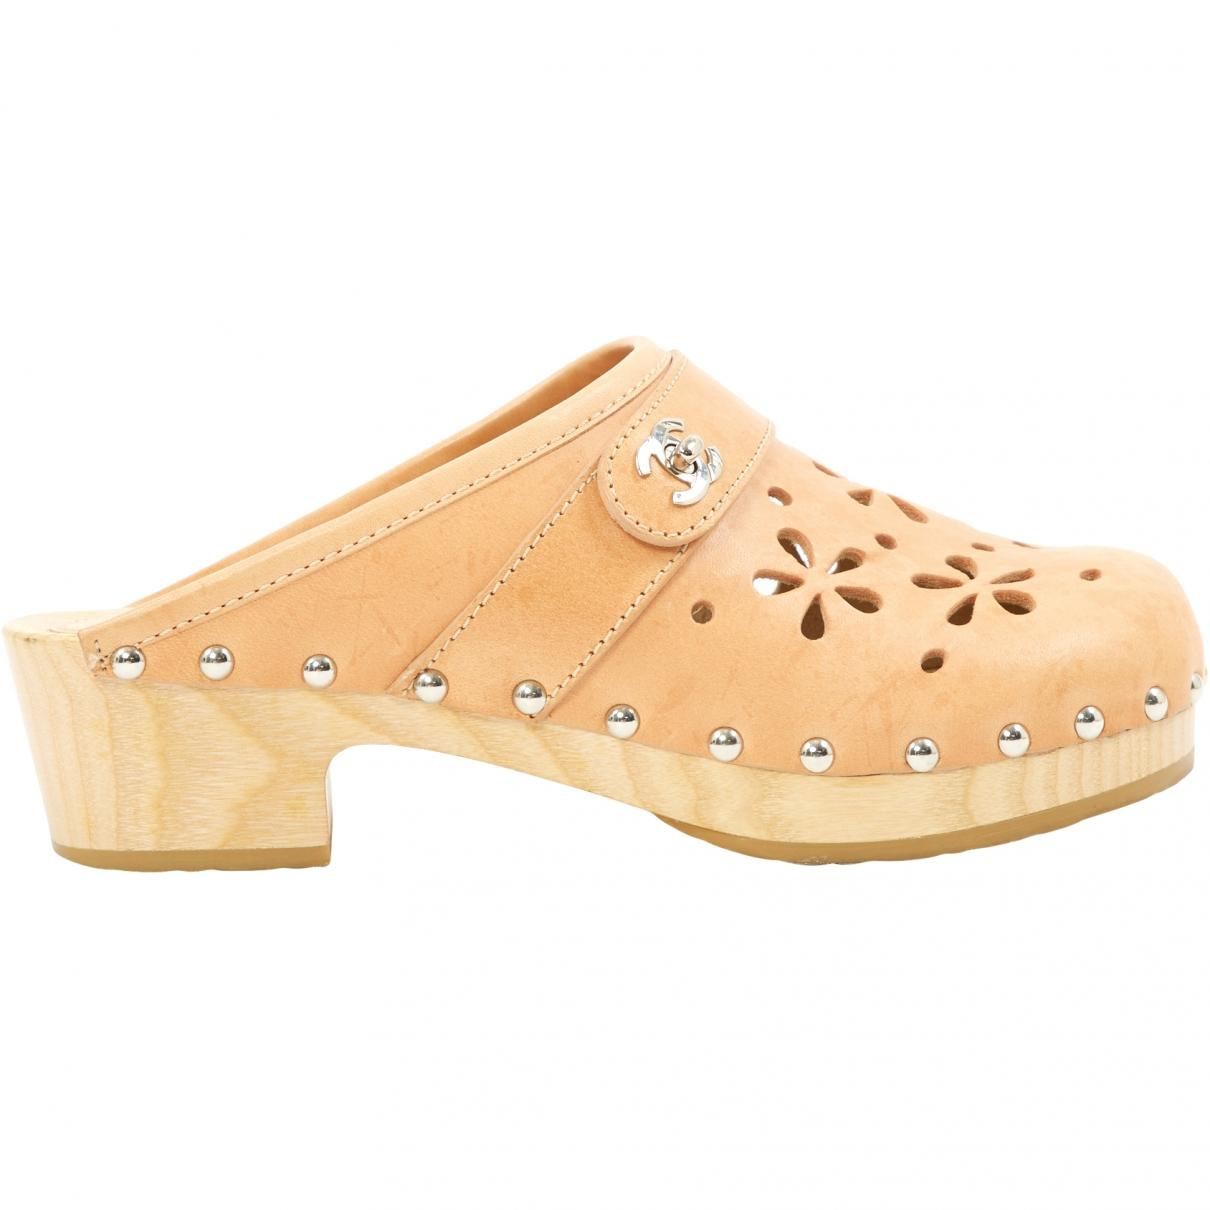 df3428ae054 Chanel. Women s Natural Beige Leather Mules   Clogs. £380 From Vestiaire  Collective